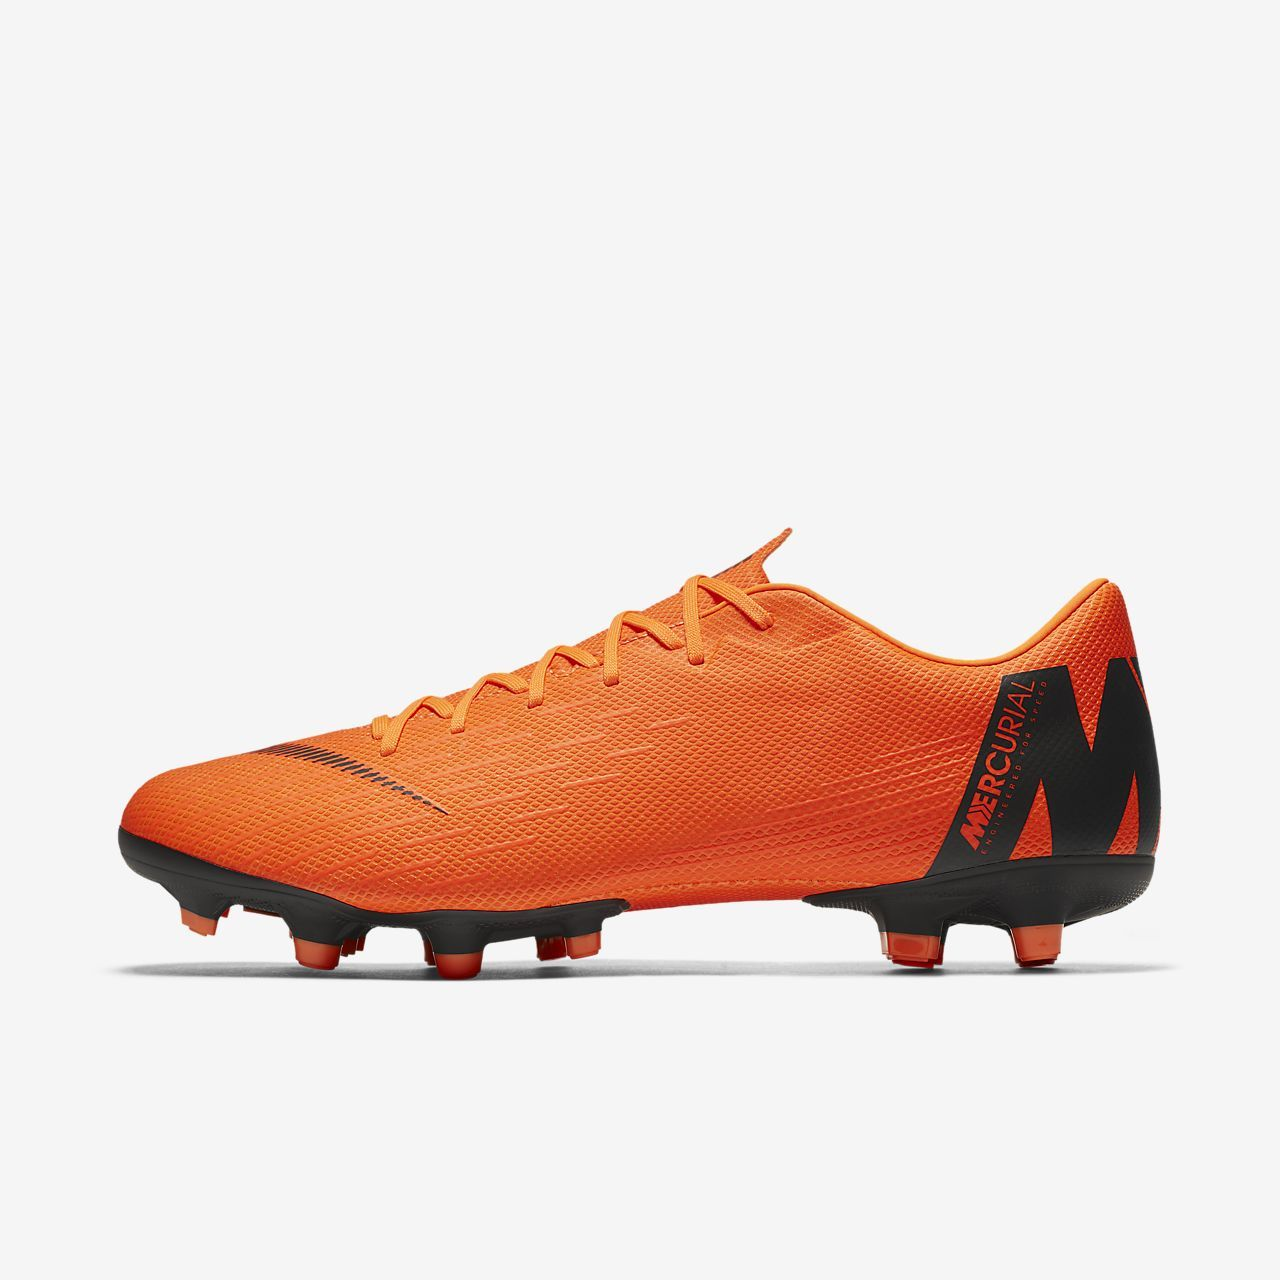 fd7cfc50eedfe Vapor 12 Academy MG Multi-Ground Soccer Cleat | I need right now ...